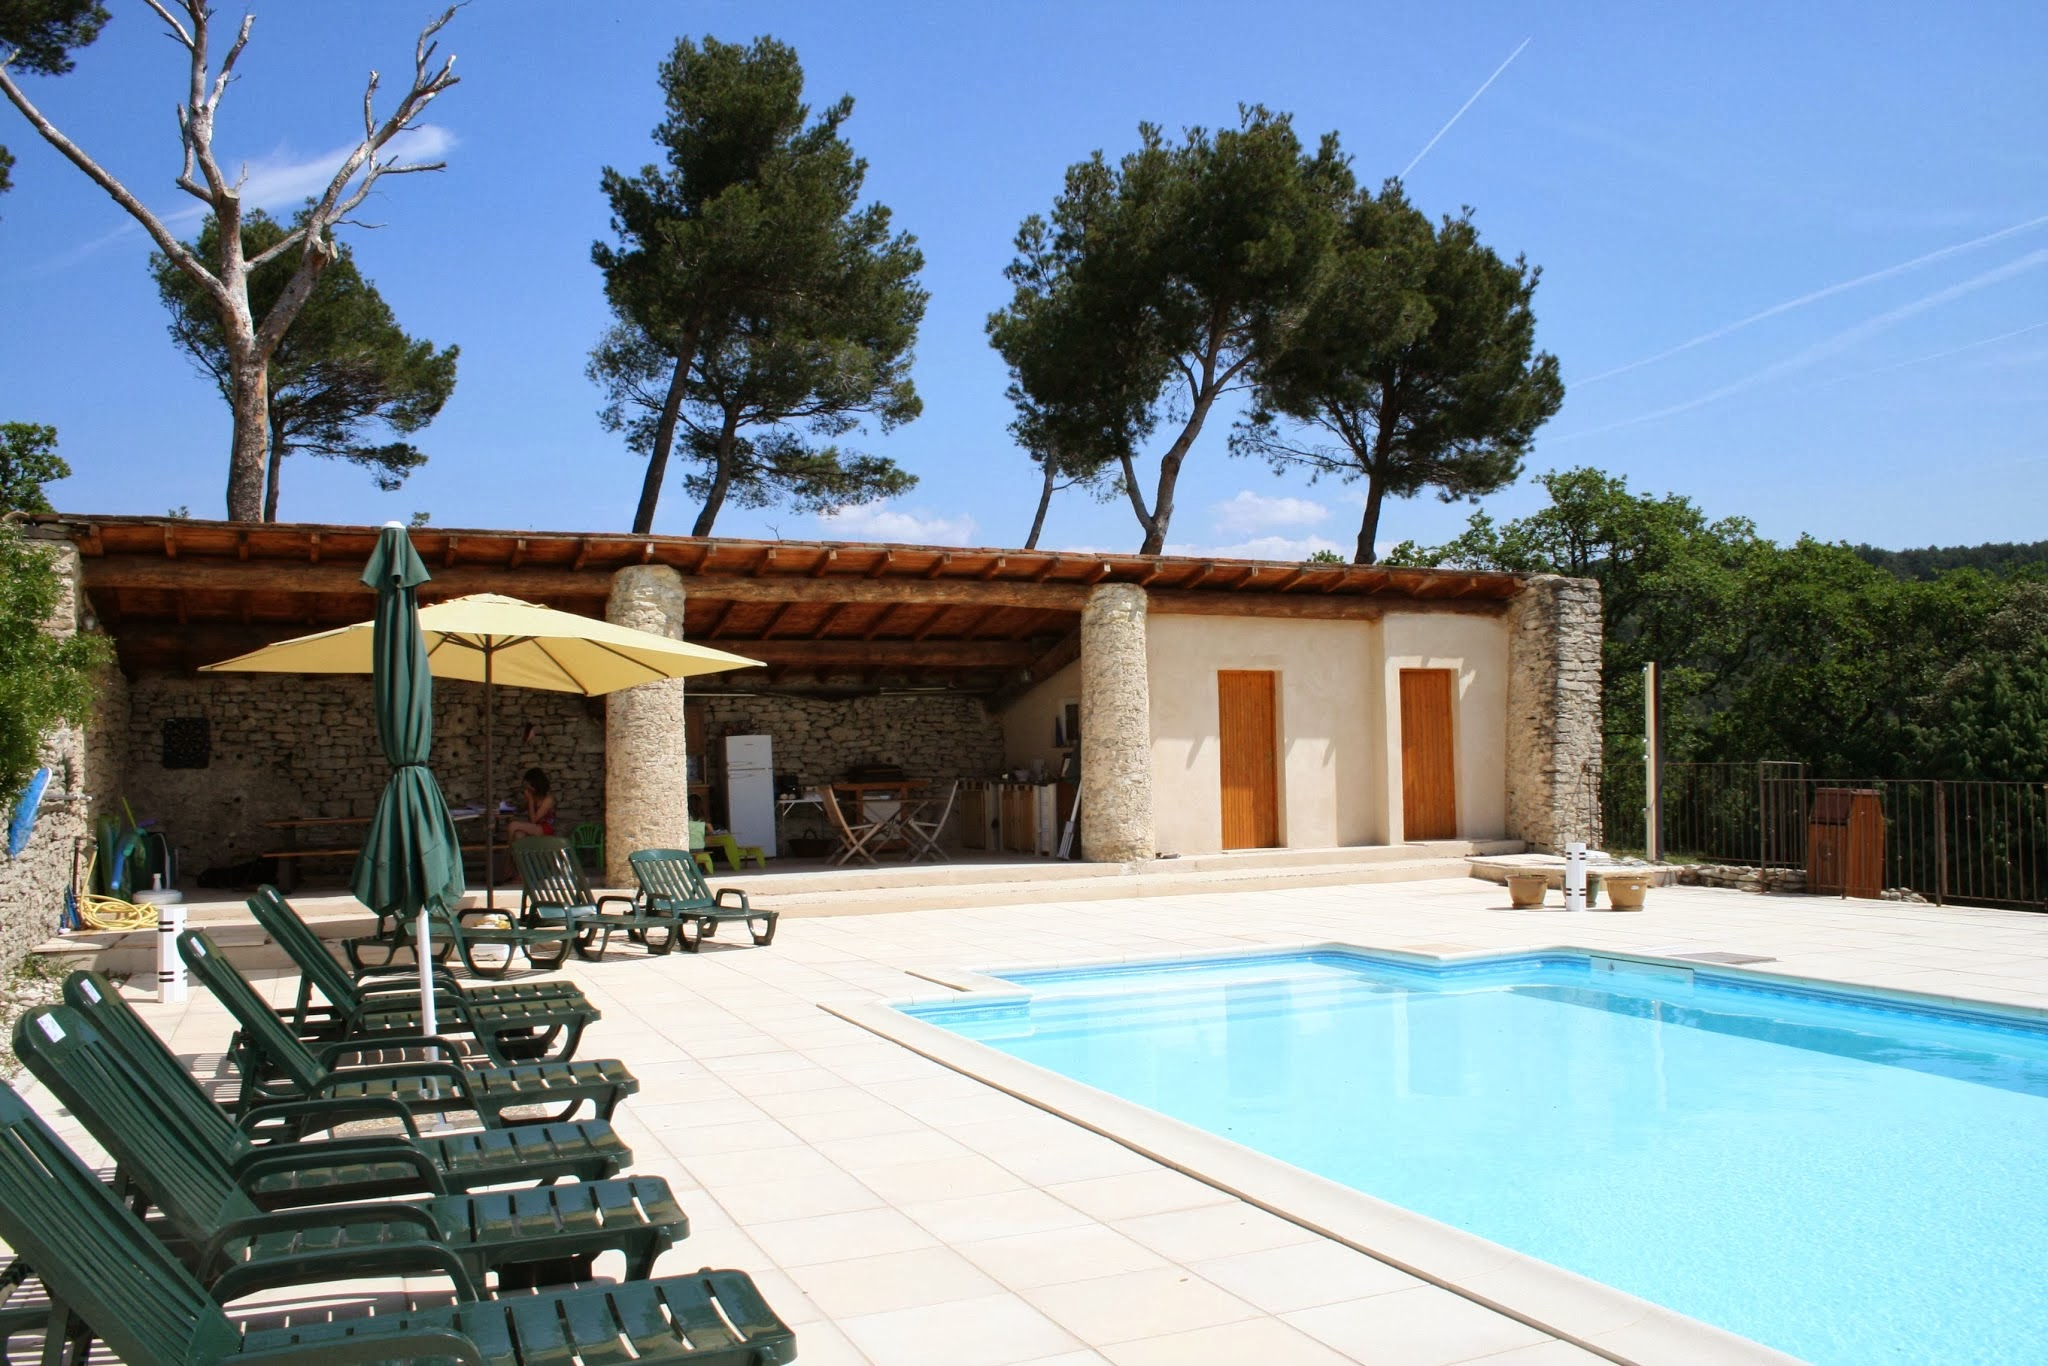 La piscine et son environnement la ribelle en provence - Photos pool house piscine ...